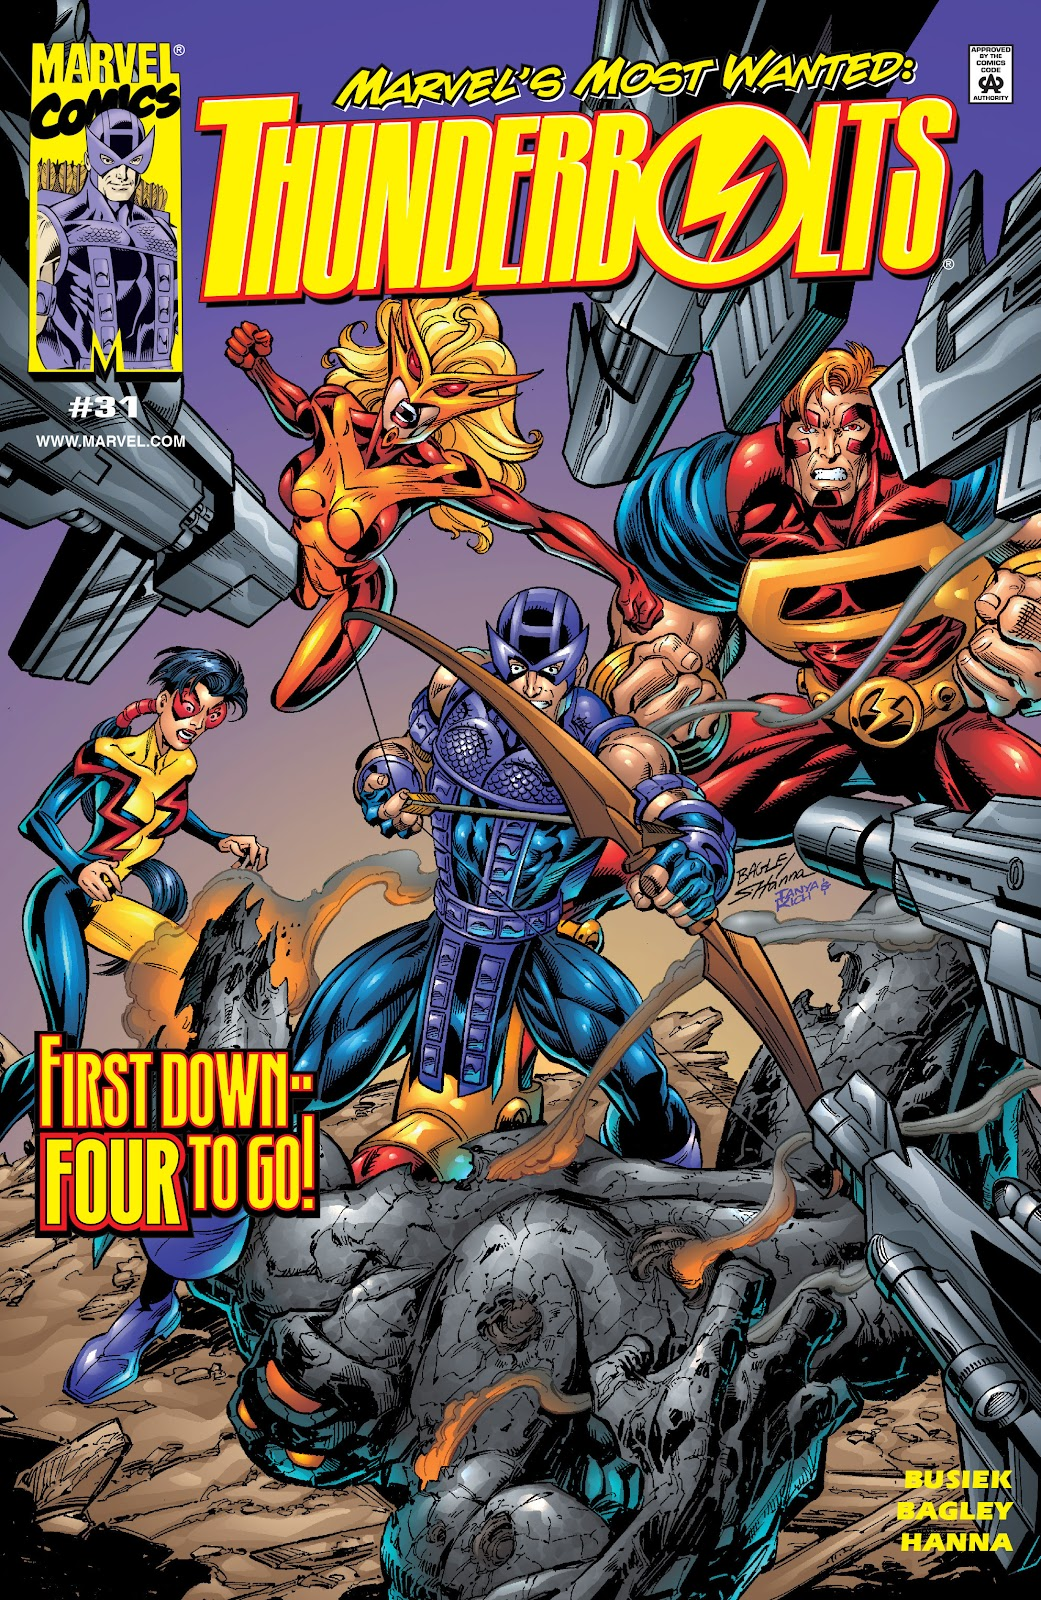 Read online Hawkeye & The Thunderbolts comic -  Issue # TPB 1 (Part 3) - 5